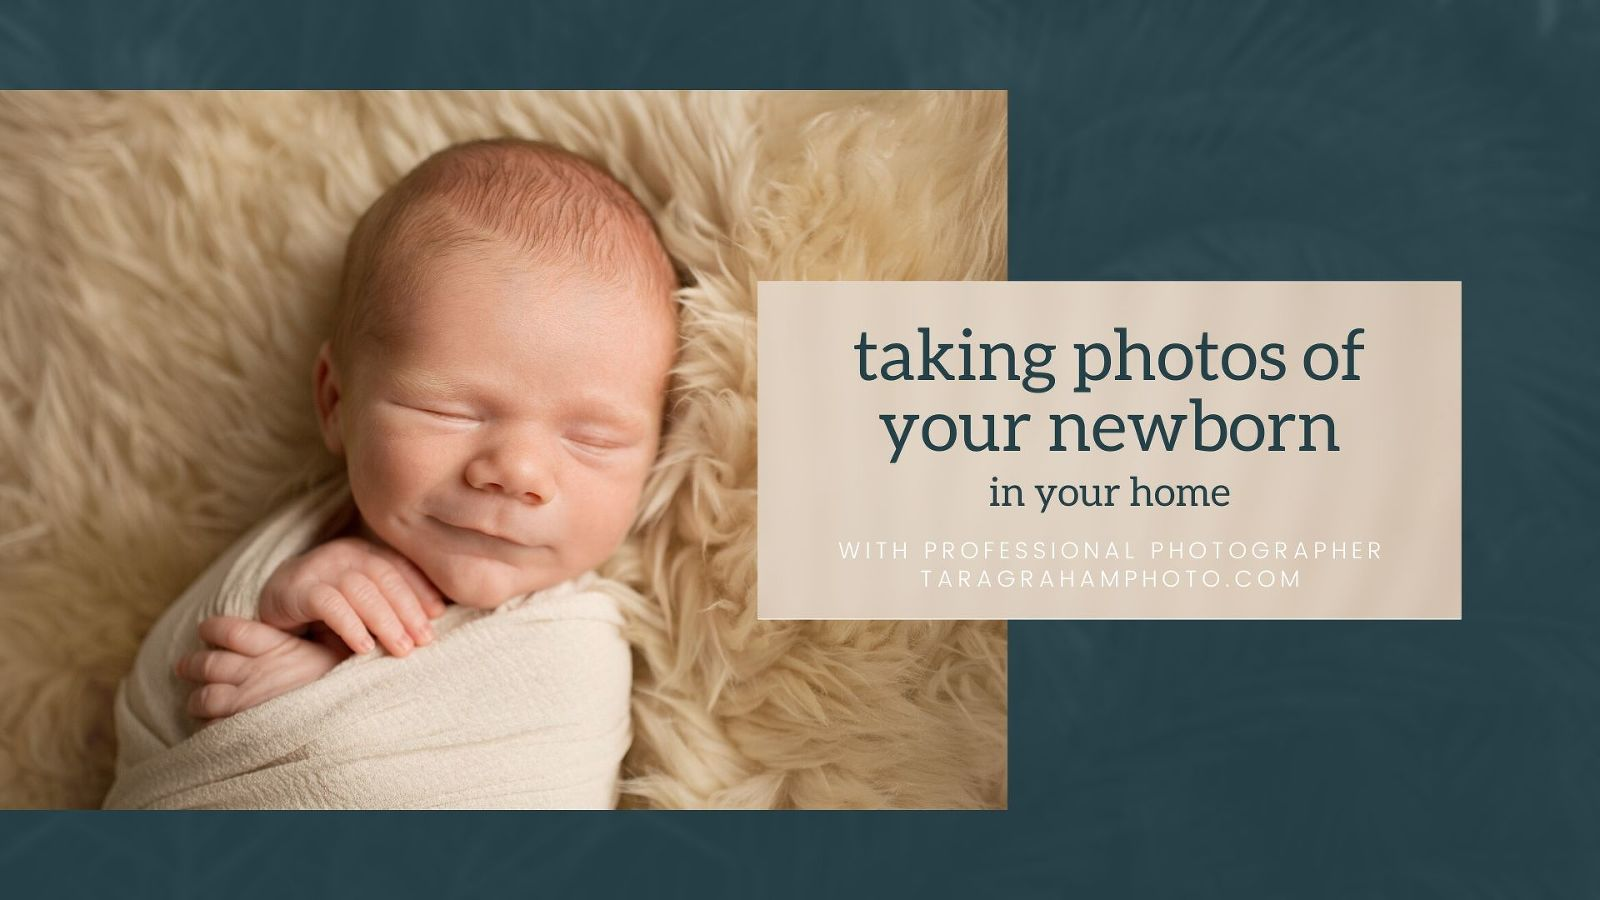 Taking photos of your newborn at home